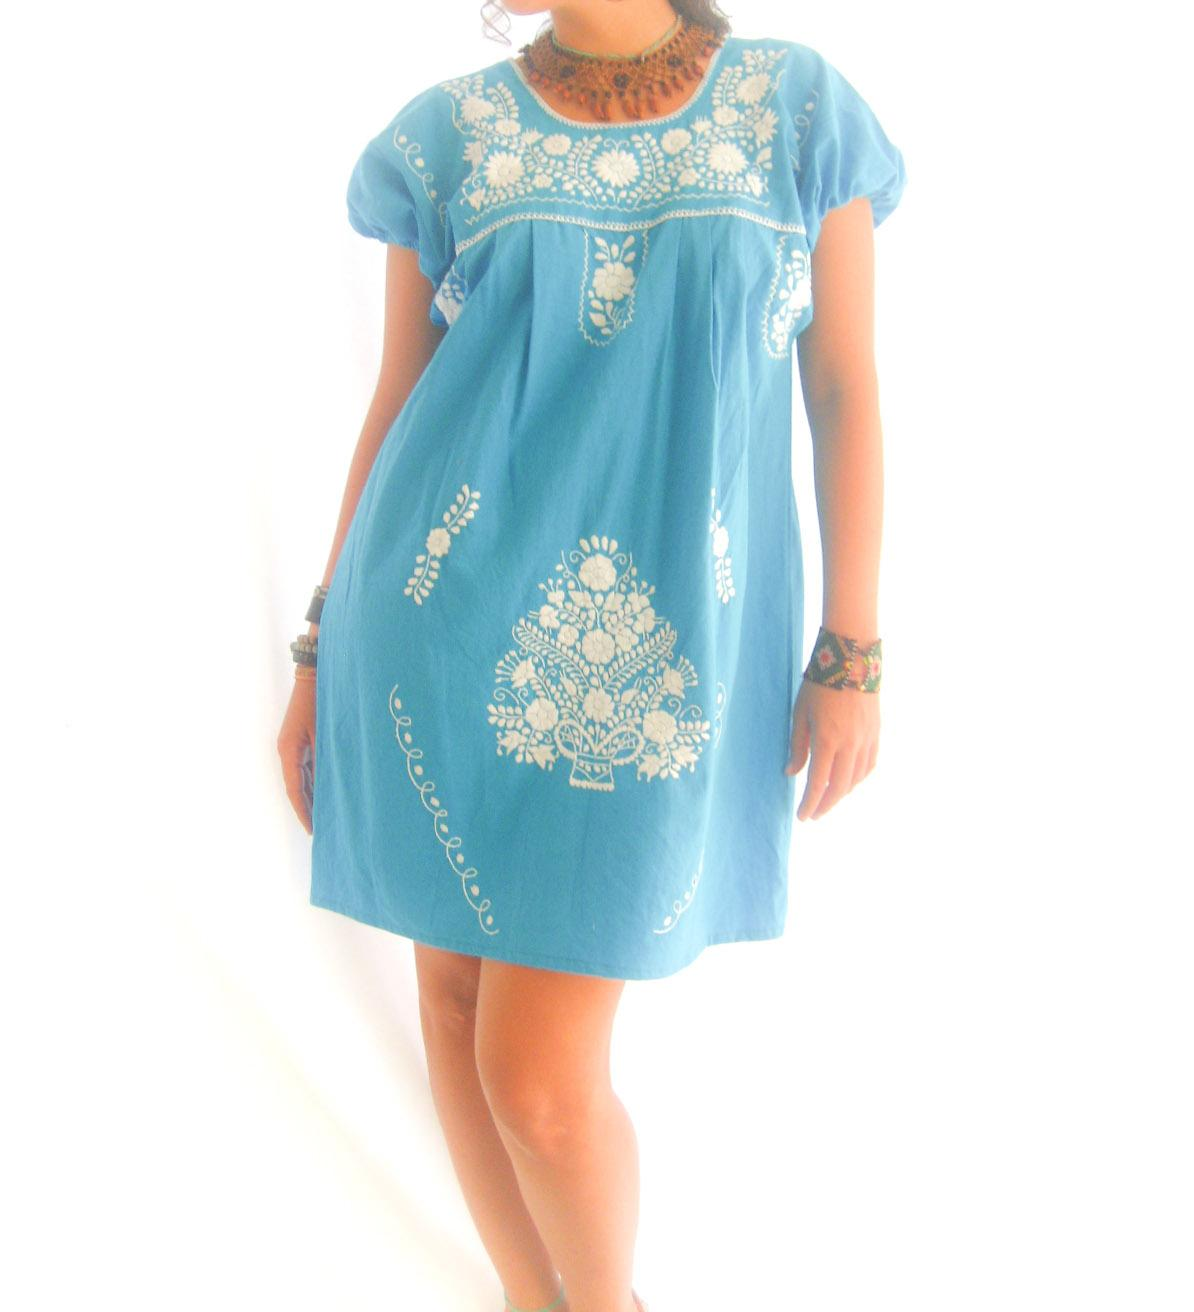 Turquoise Ocean Lover vtg Mexican summer tunic